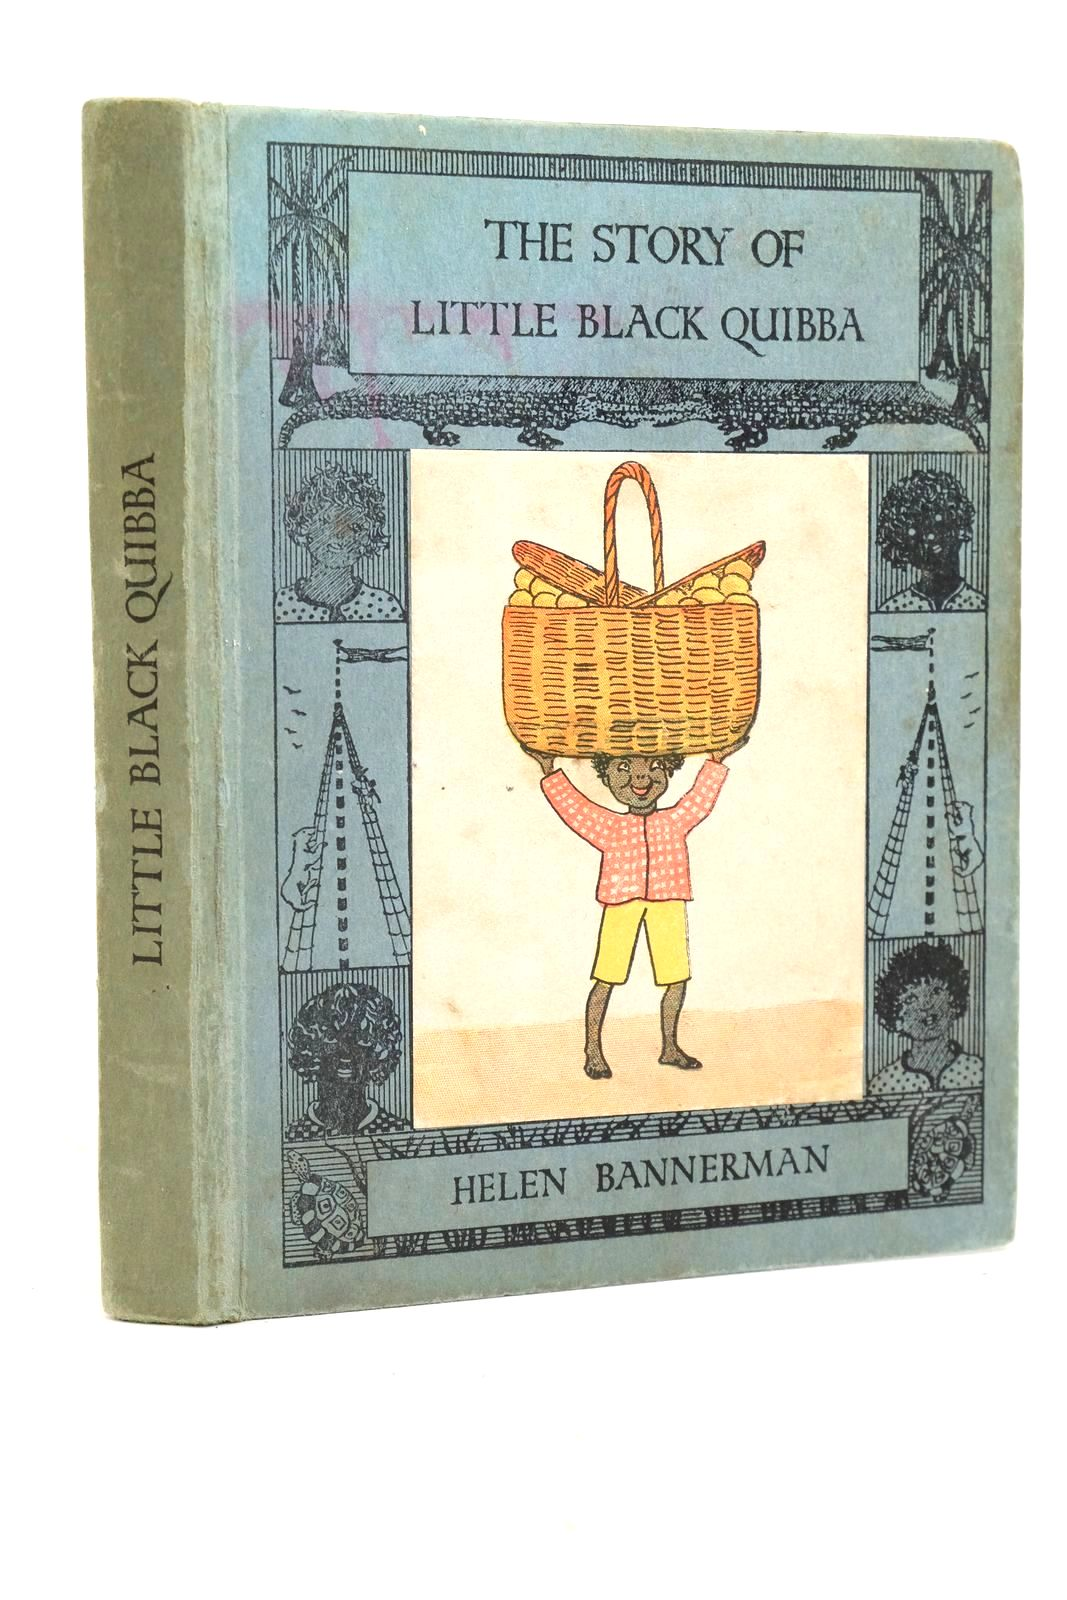 Photo of THE STORY OF LITTLE BLACK QUIBBA written by Bannerman, Helen illustrated by Bannerman, Helen published by Nisbet & Co. Ltd. (STOCK CODE: 1321156)  for sale by Stella & Rose's Books